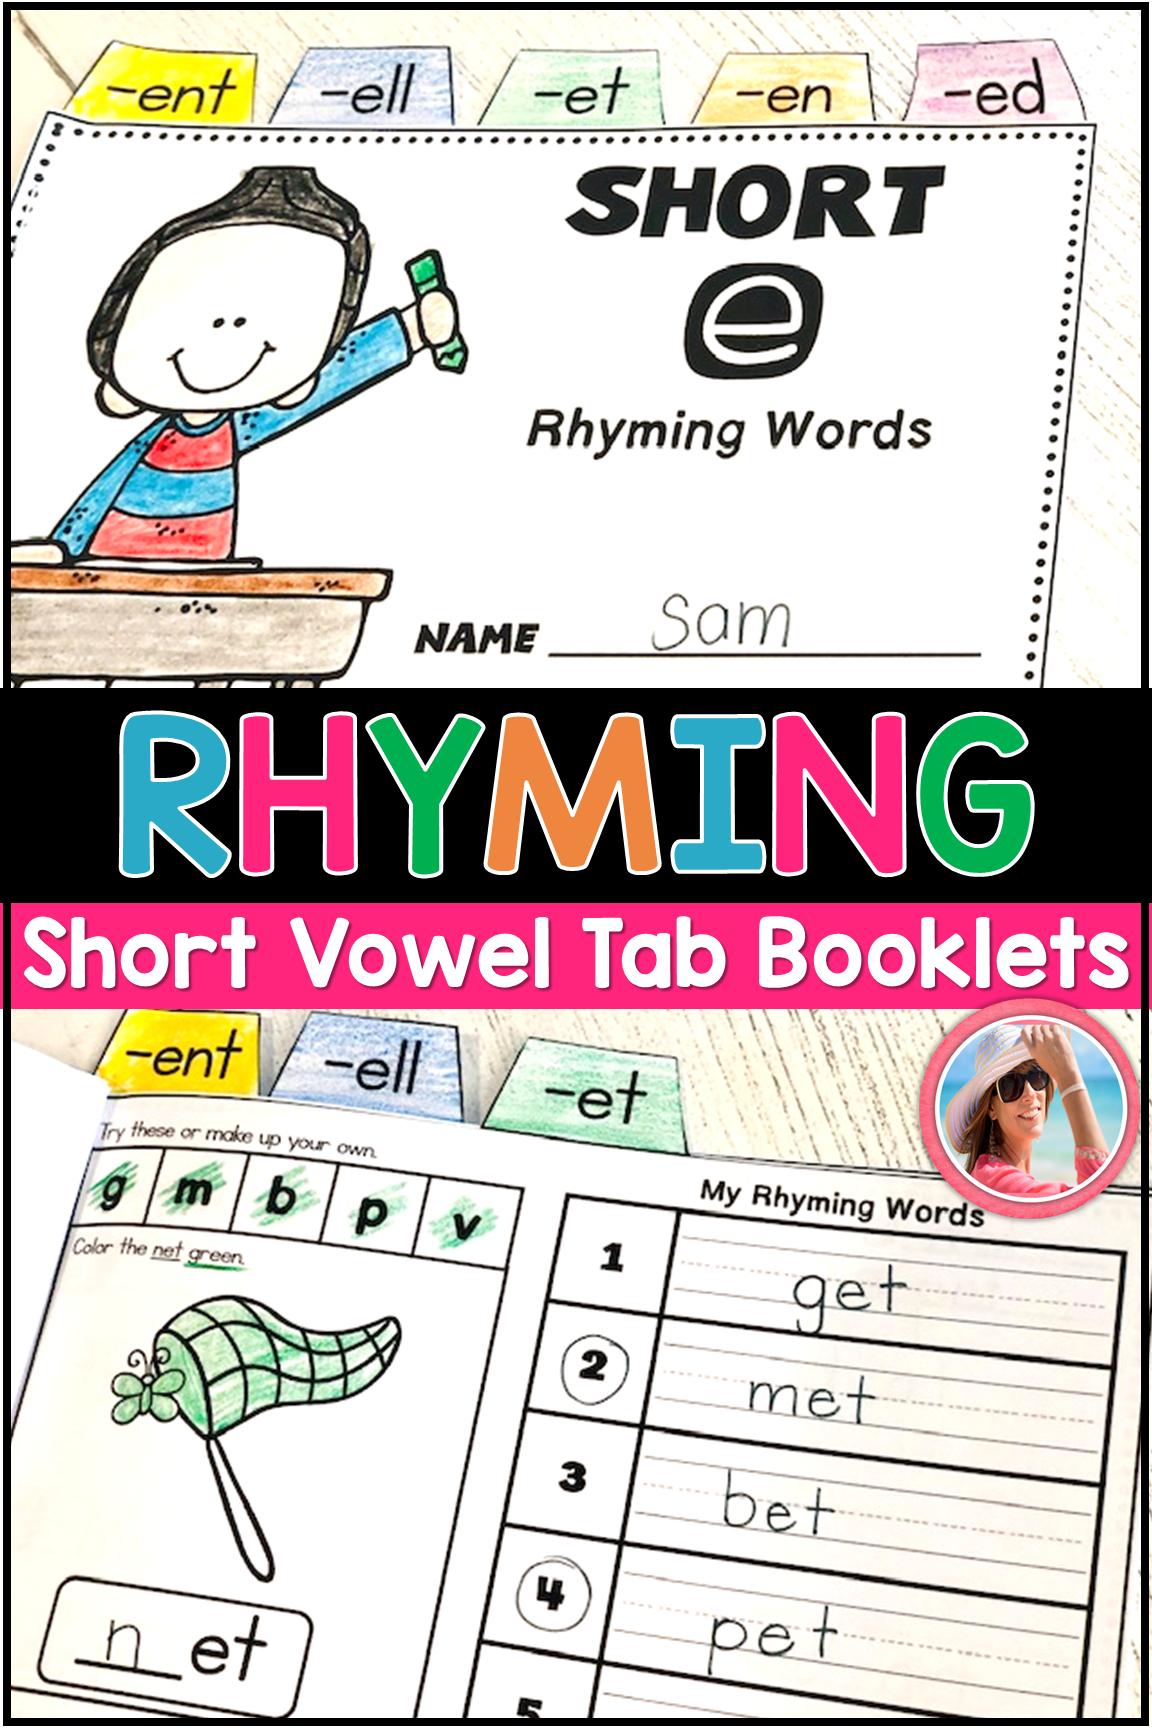 Rhyming Words Tab Books For Short Vowels